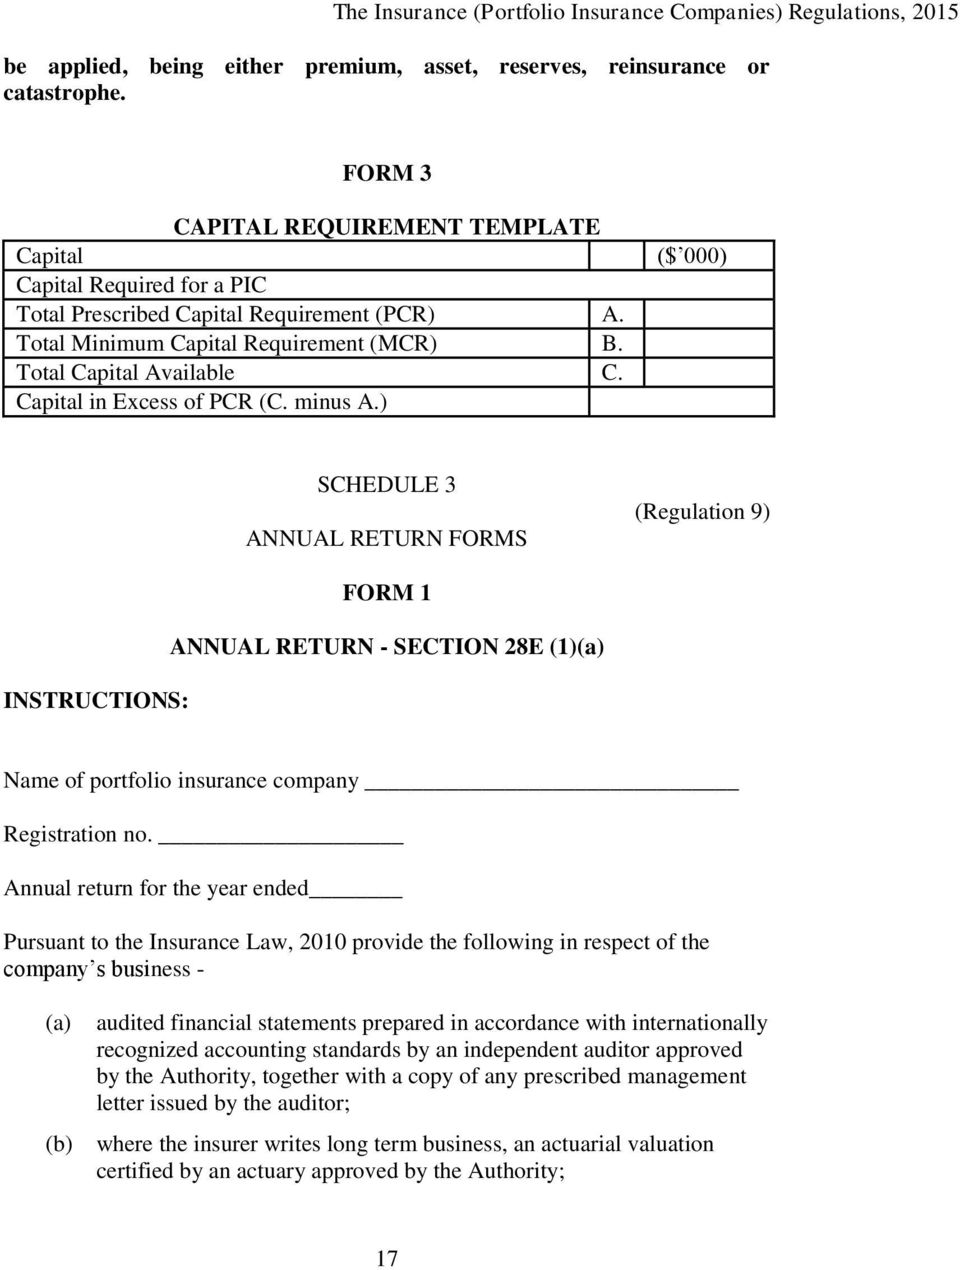 Capital in Excess of PCR (C. minus A.) SCHEDULE 3 ANNUAL RETURN FORMS (Regulation 9) INSTRUCTIONS: FORM 1 ANNUAL RETURN - SECTION 28E (1)(a) Name of portfolio insurance company Registration no.